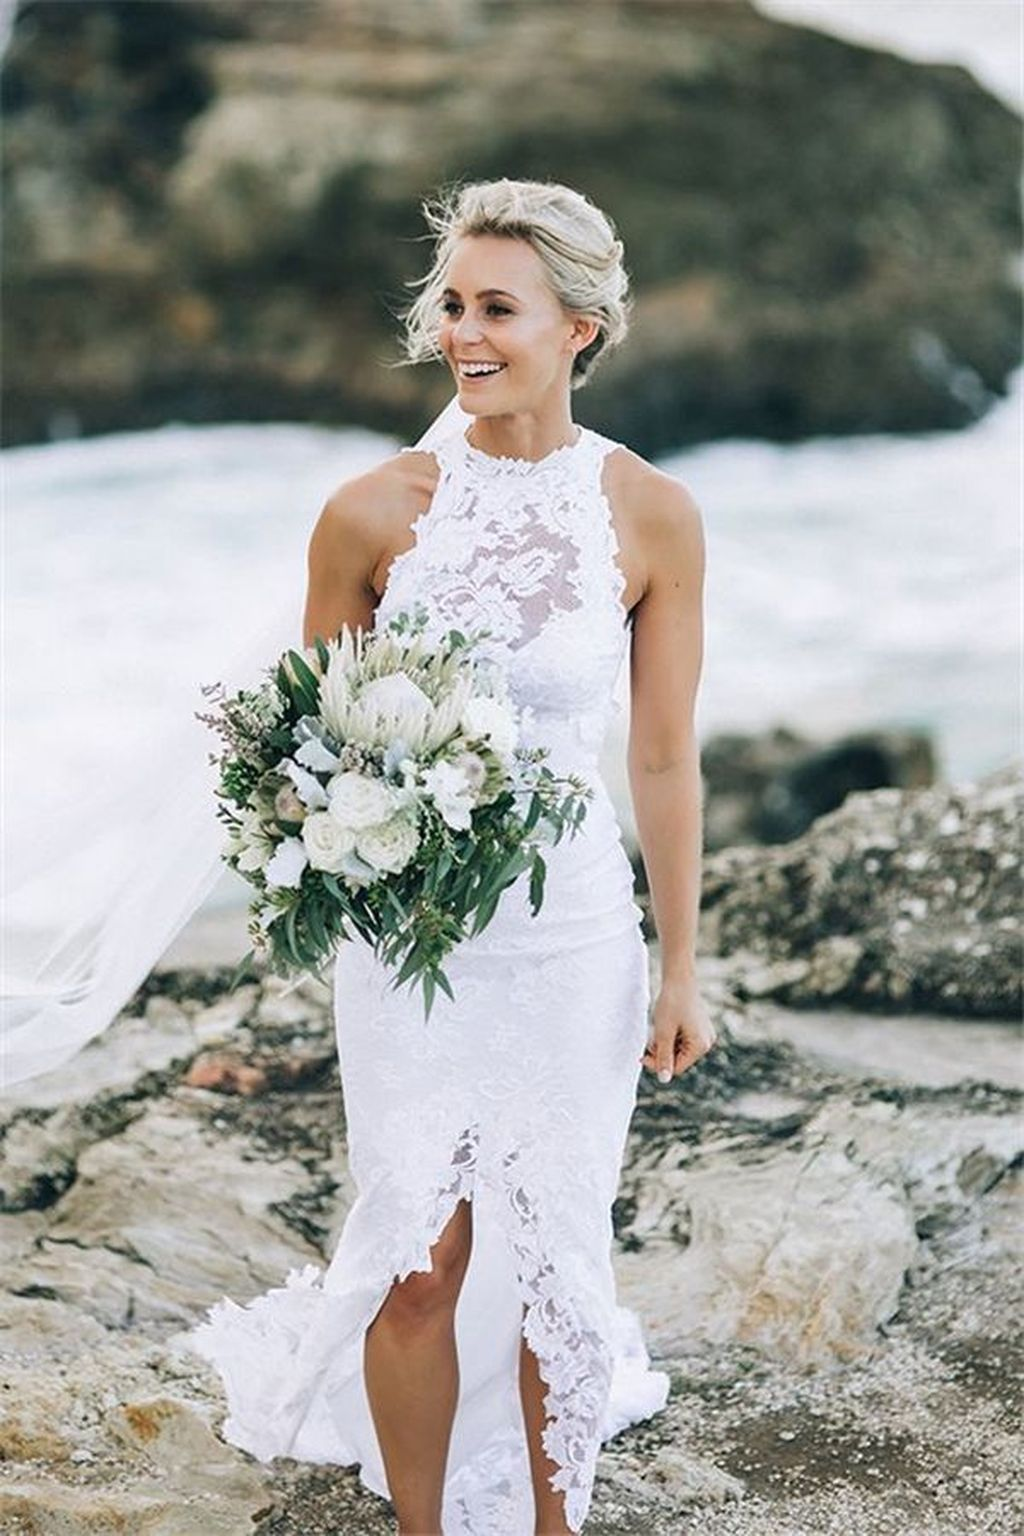 best princess wedding dress ideas for beach theme vow renewal